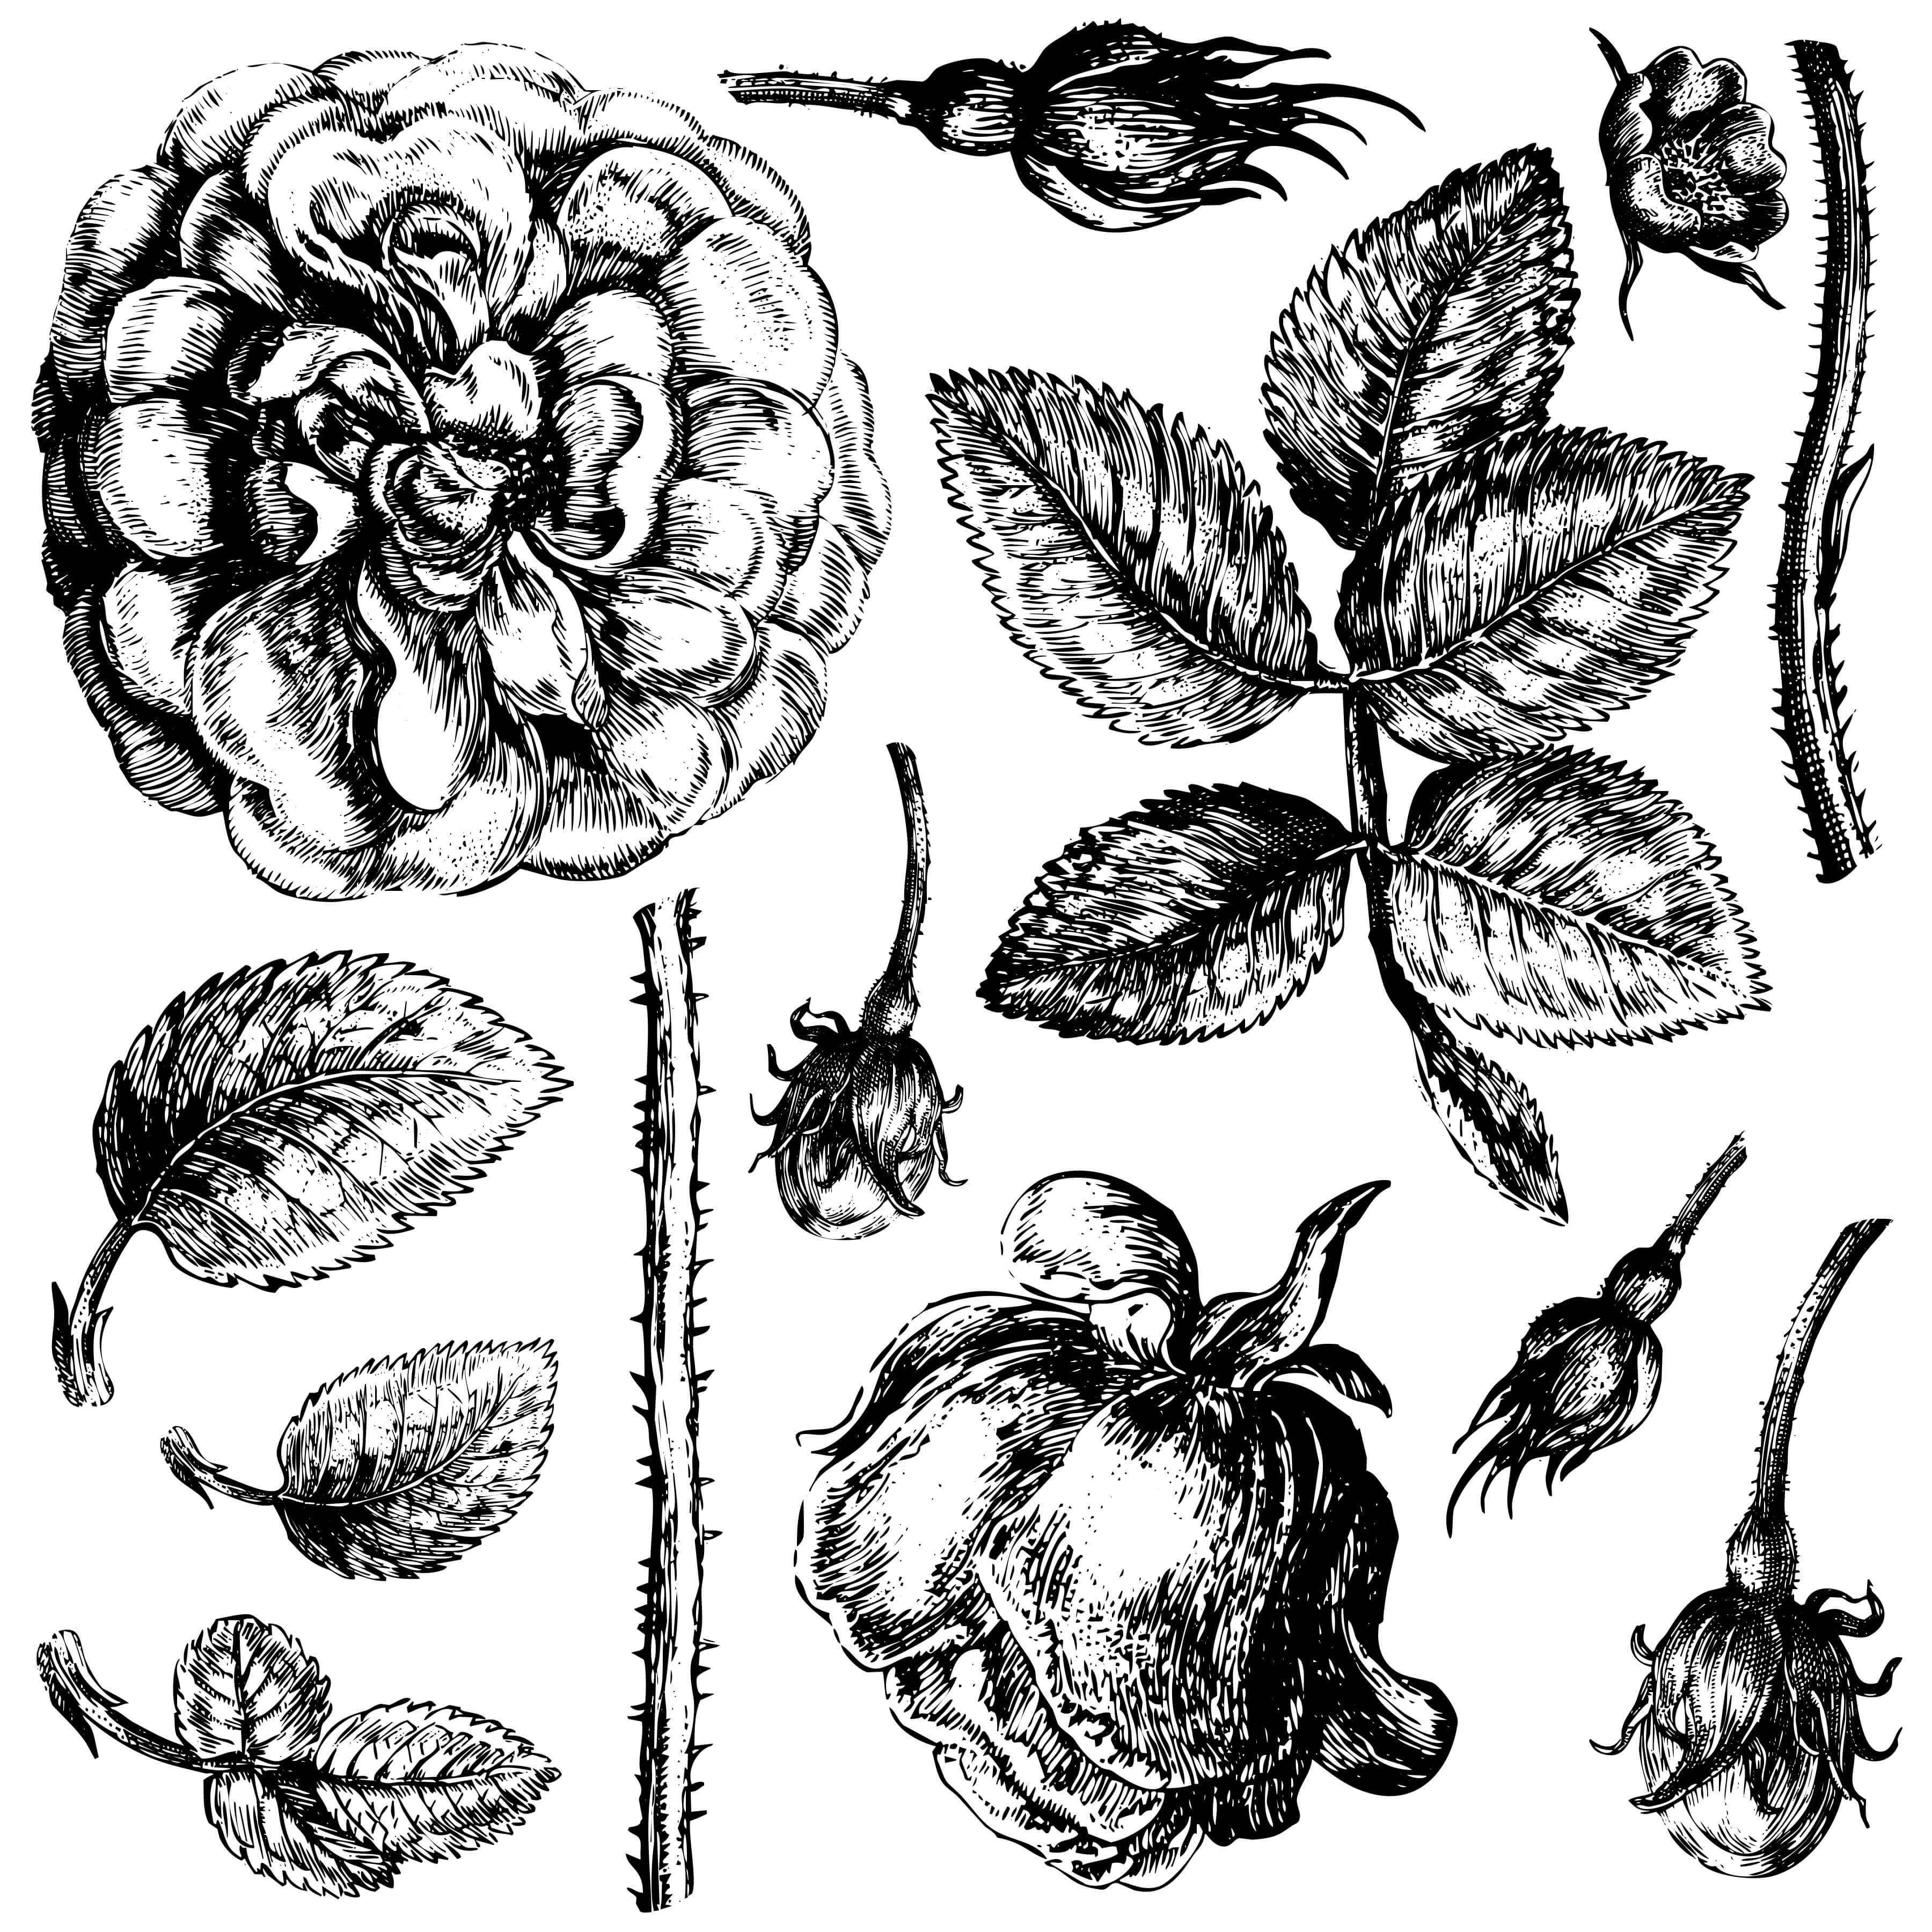 Have fun adding texture to your projects with these fun Iron Orchid Designs - Lady Of Shallot | www.raggedy-bits.com | #raggedybits #IOD #DecorStamps #Lady Of Shallot #texture